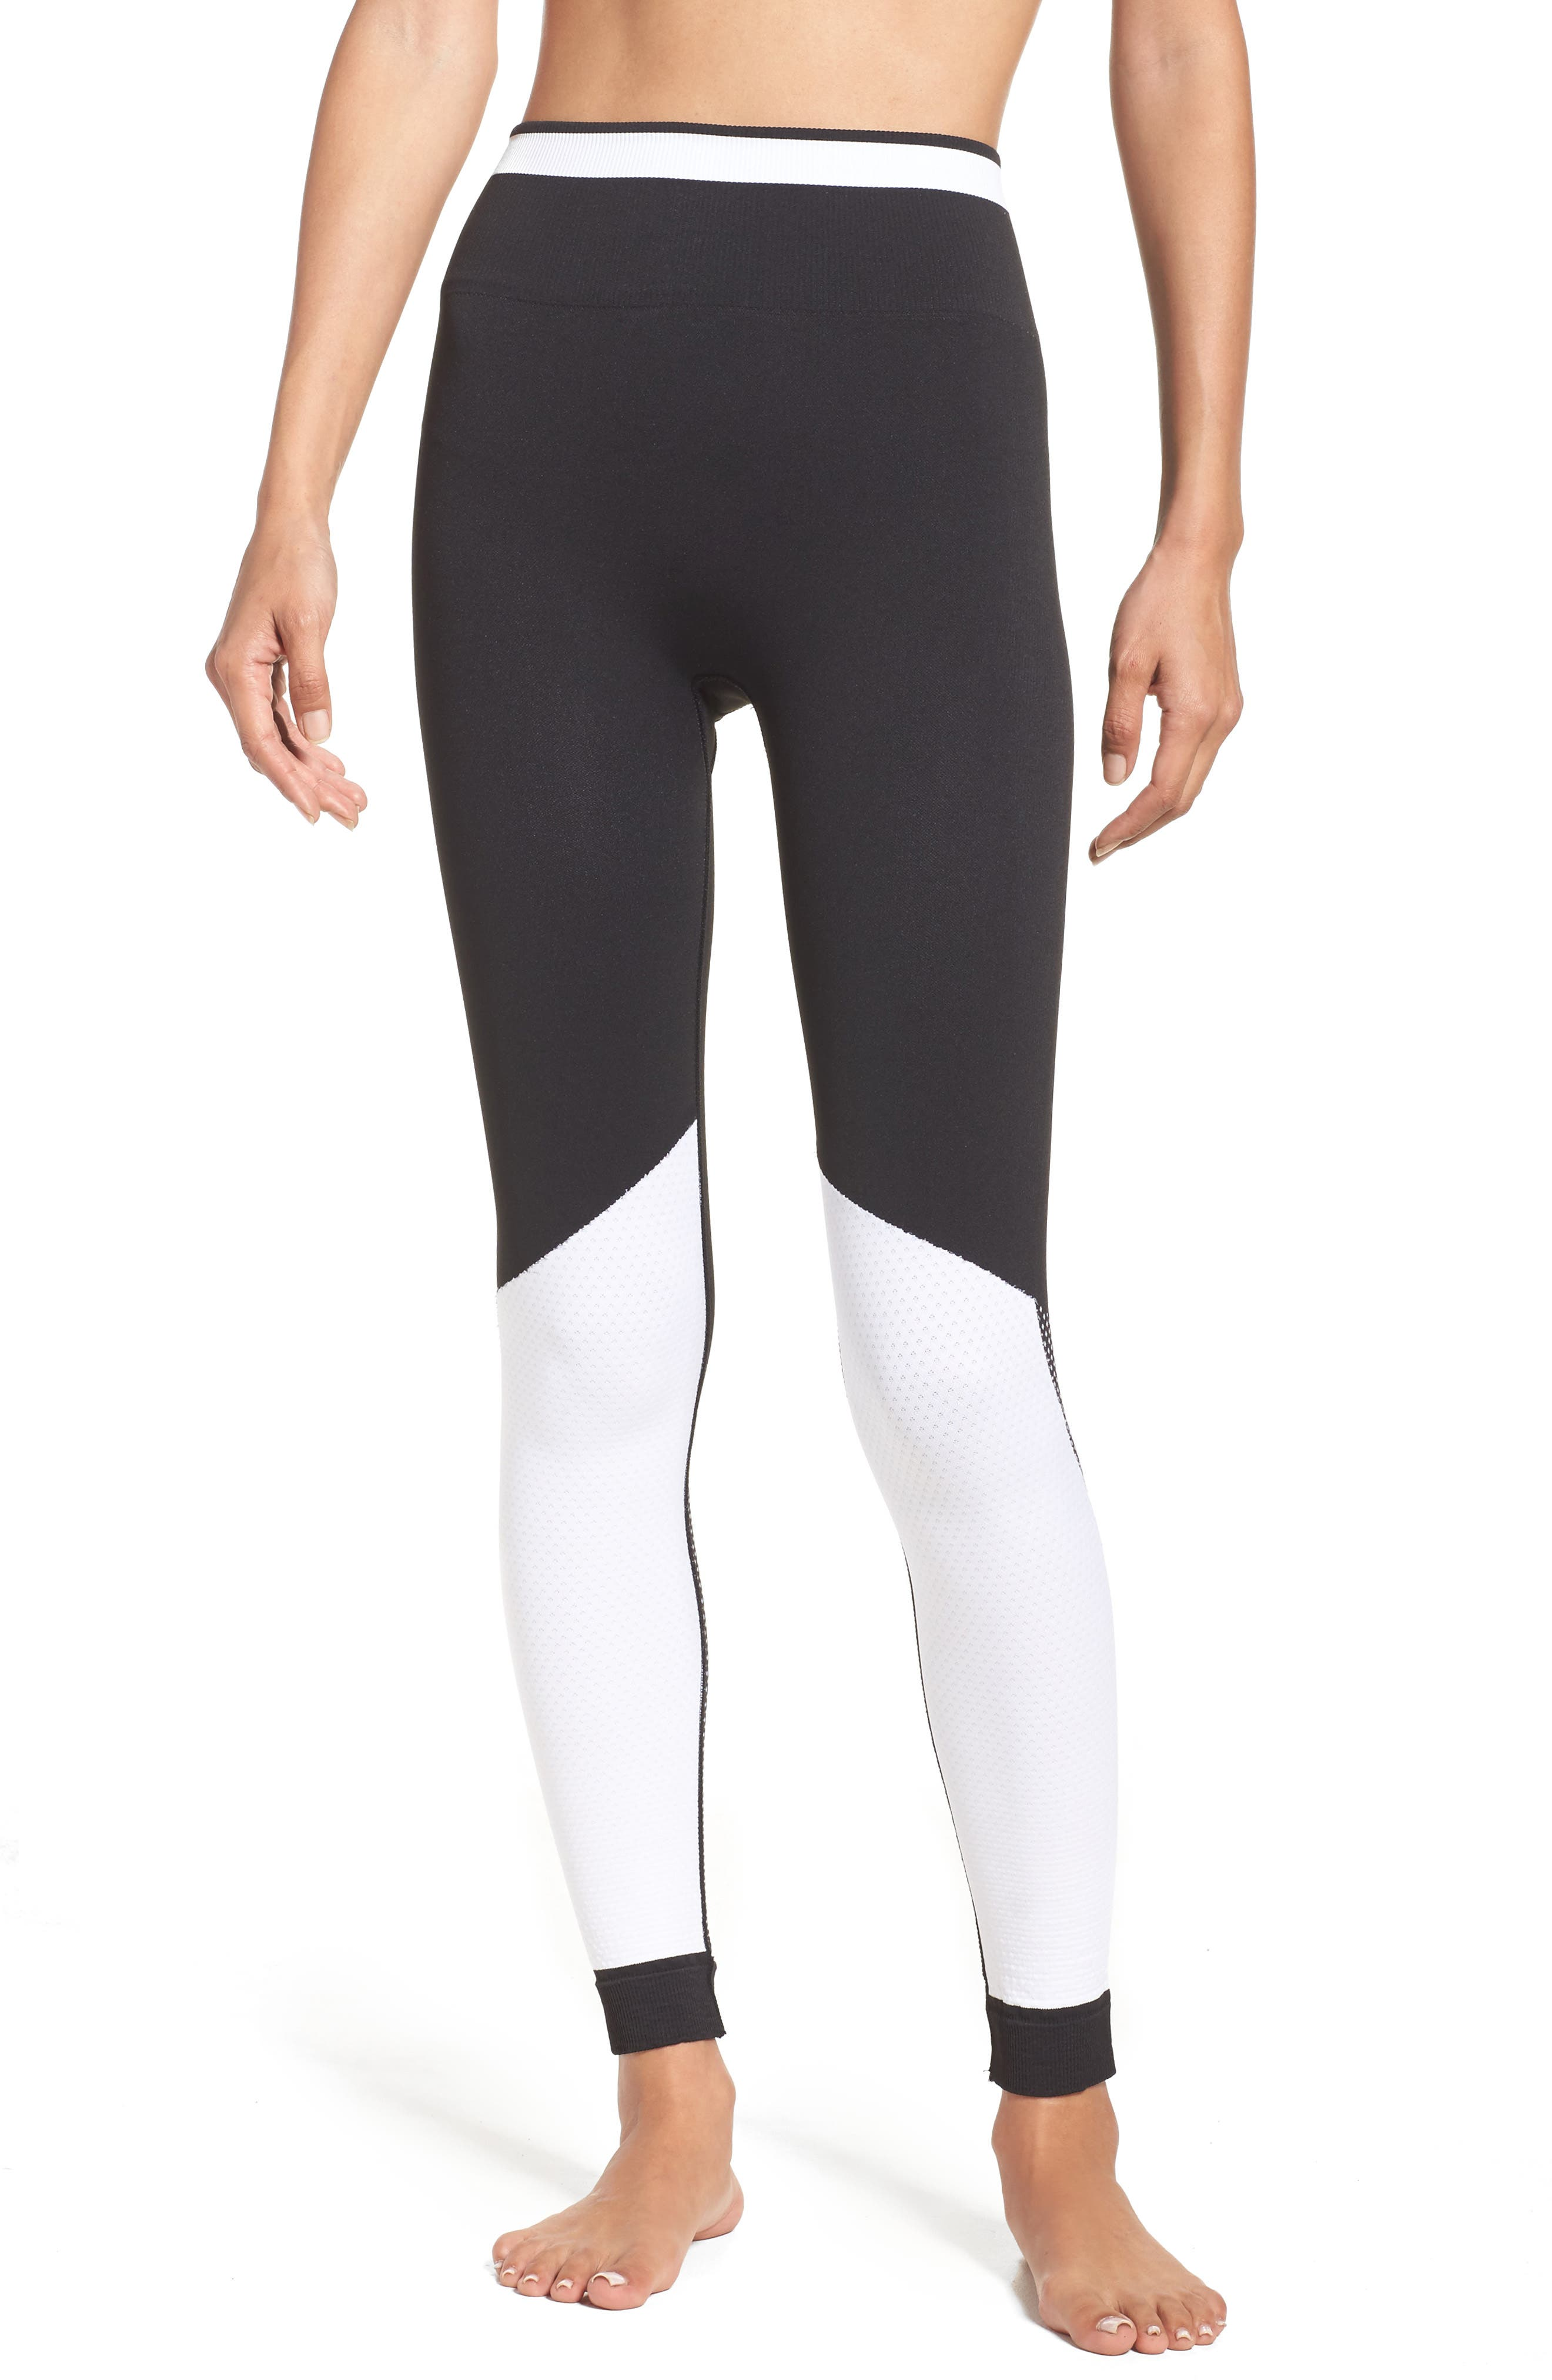 Ace Performance Tights,                         Main,                         color, Black/ White